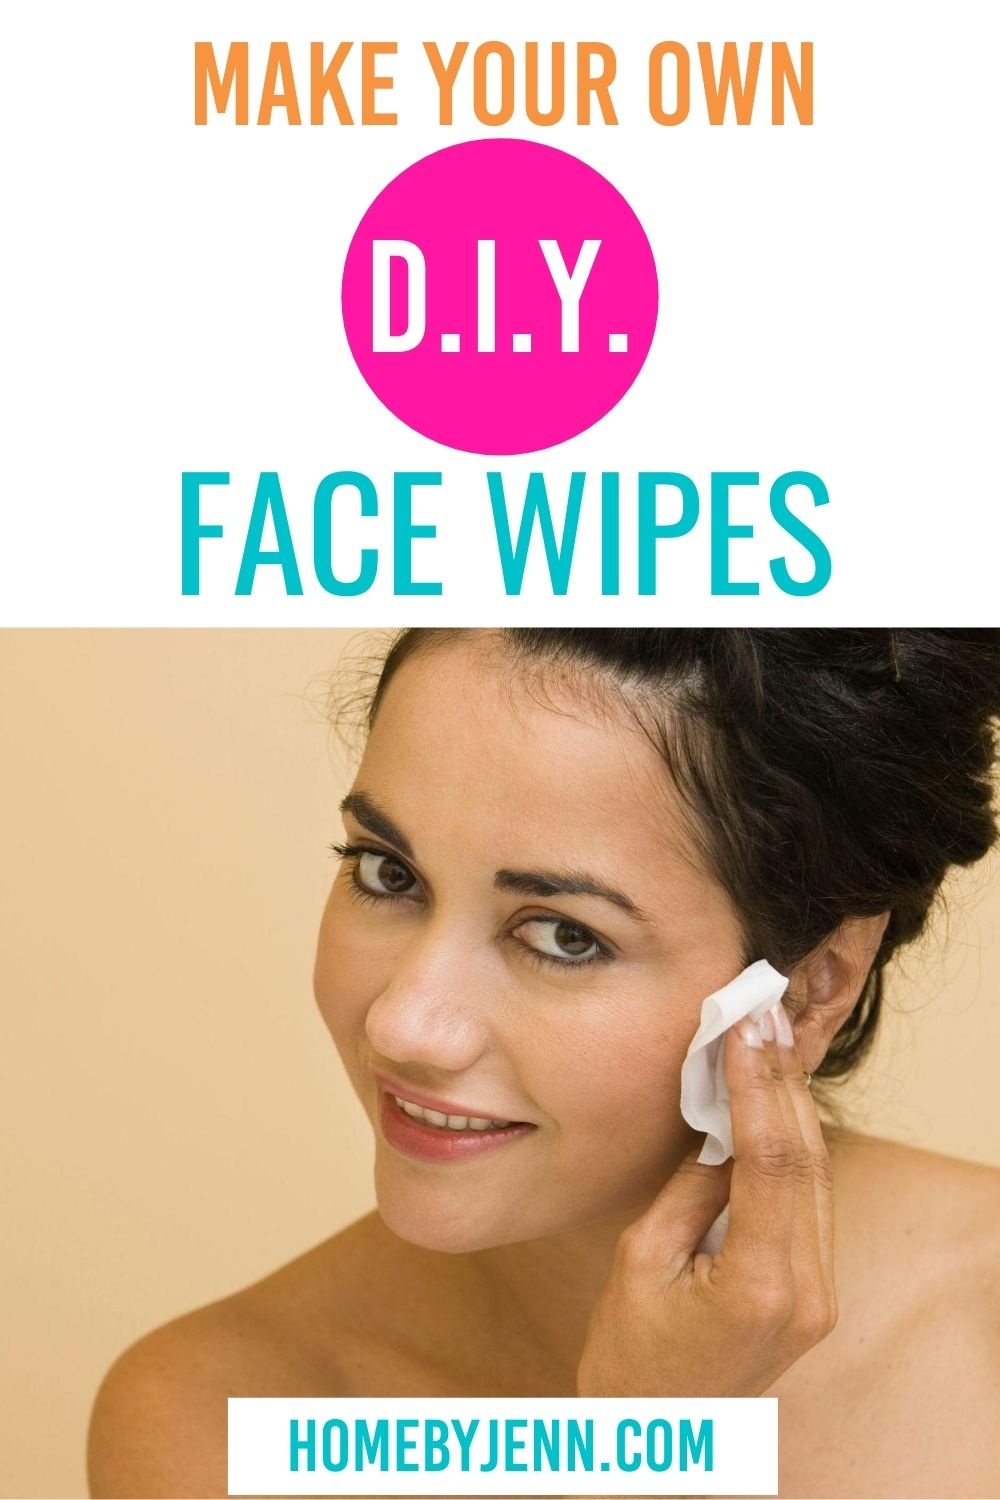 These DIY face wipes are so simple to make in no time. Gain control of the chemicals you use with these homemade face wipes. They'll help you clean your face naturally. #facewipes #natural #beauty #homemade via @homebyjenn